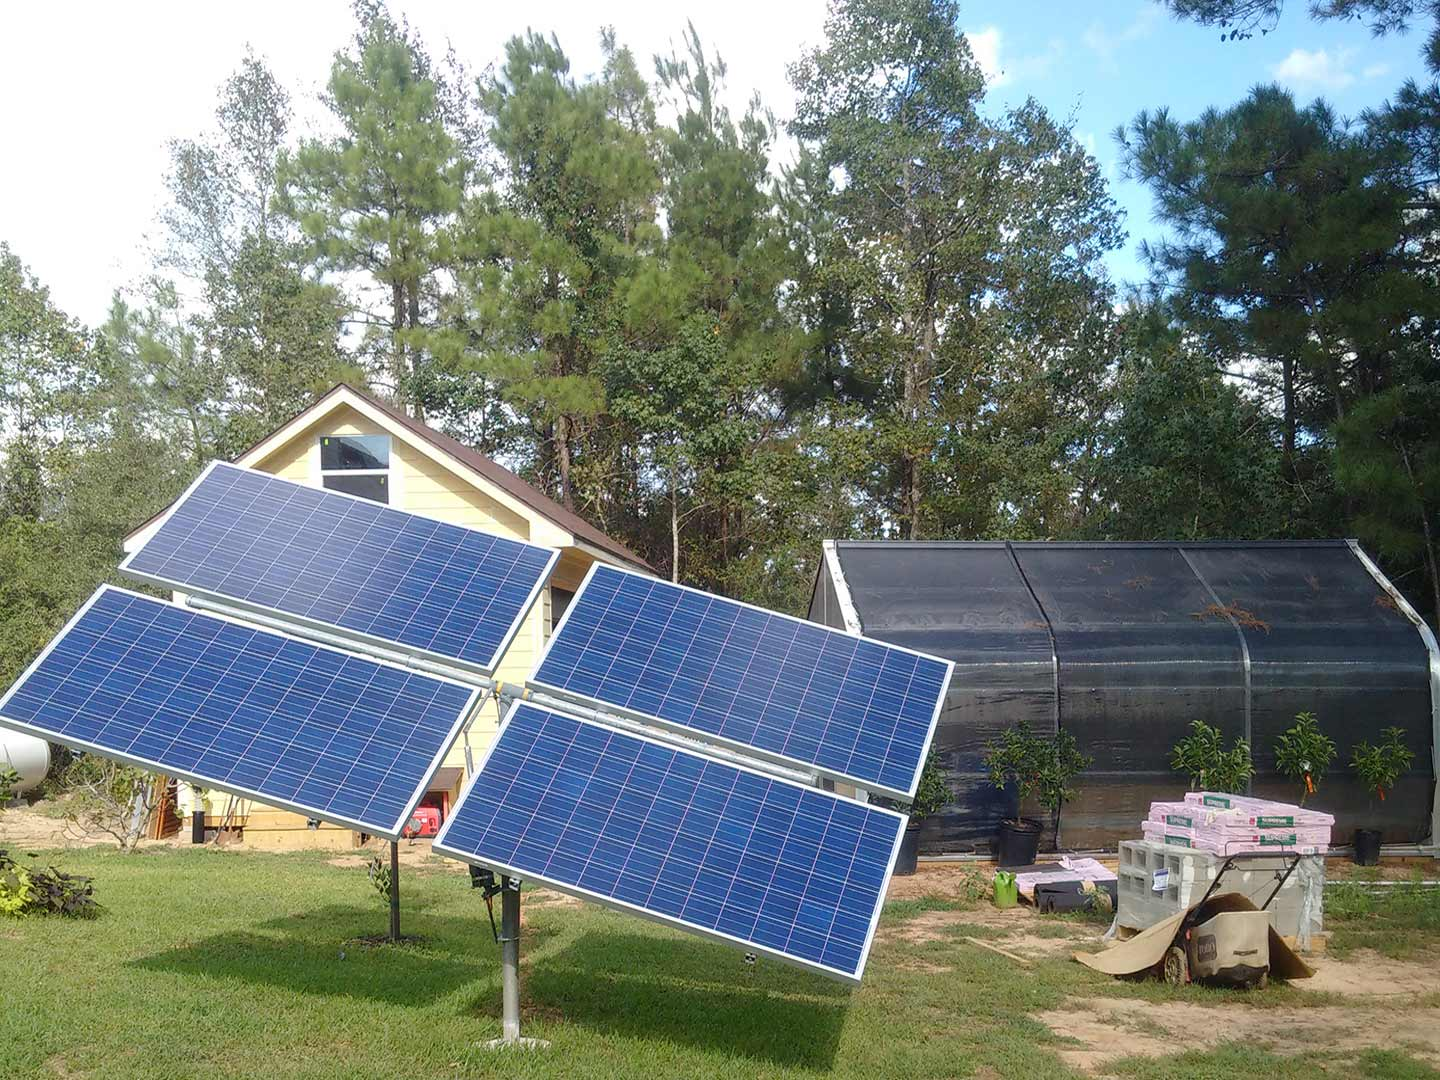 Photo: Off-grid PV-tracker with an effective capacity of 1.2 kW for feeding the private greenhouse in Montgomery County, Texas, USA.